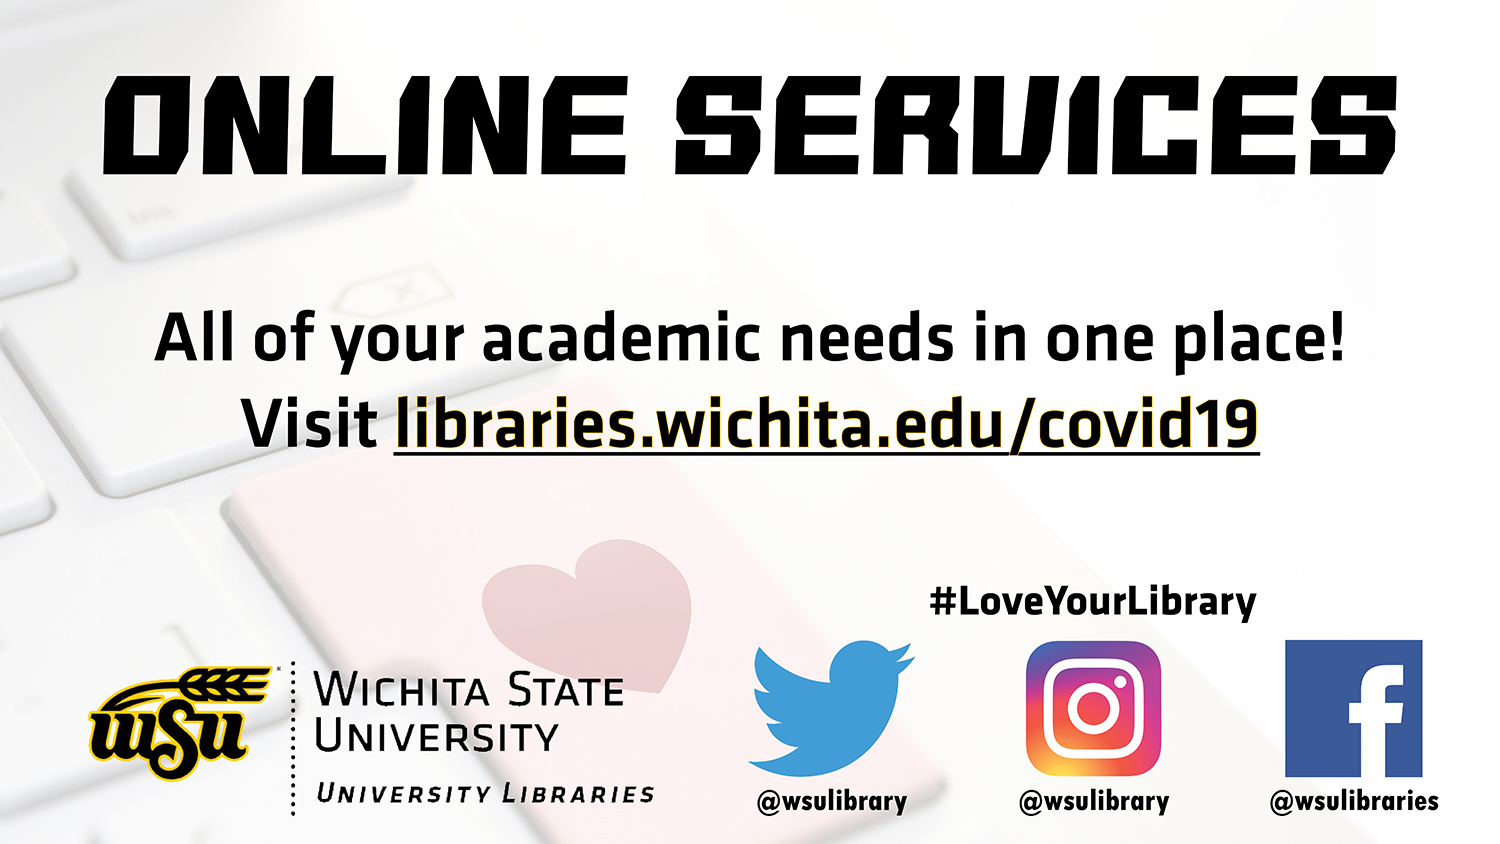 Online Services available at WSU Libraries